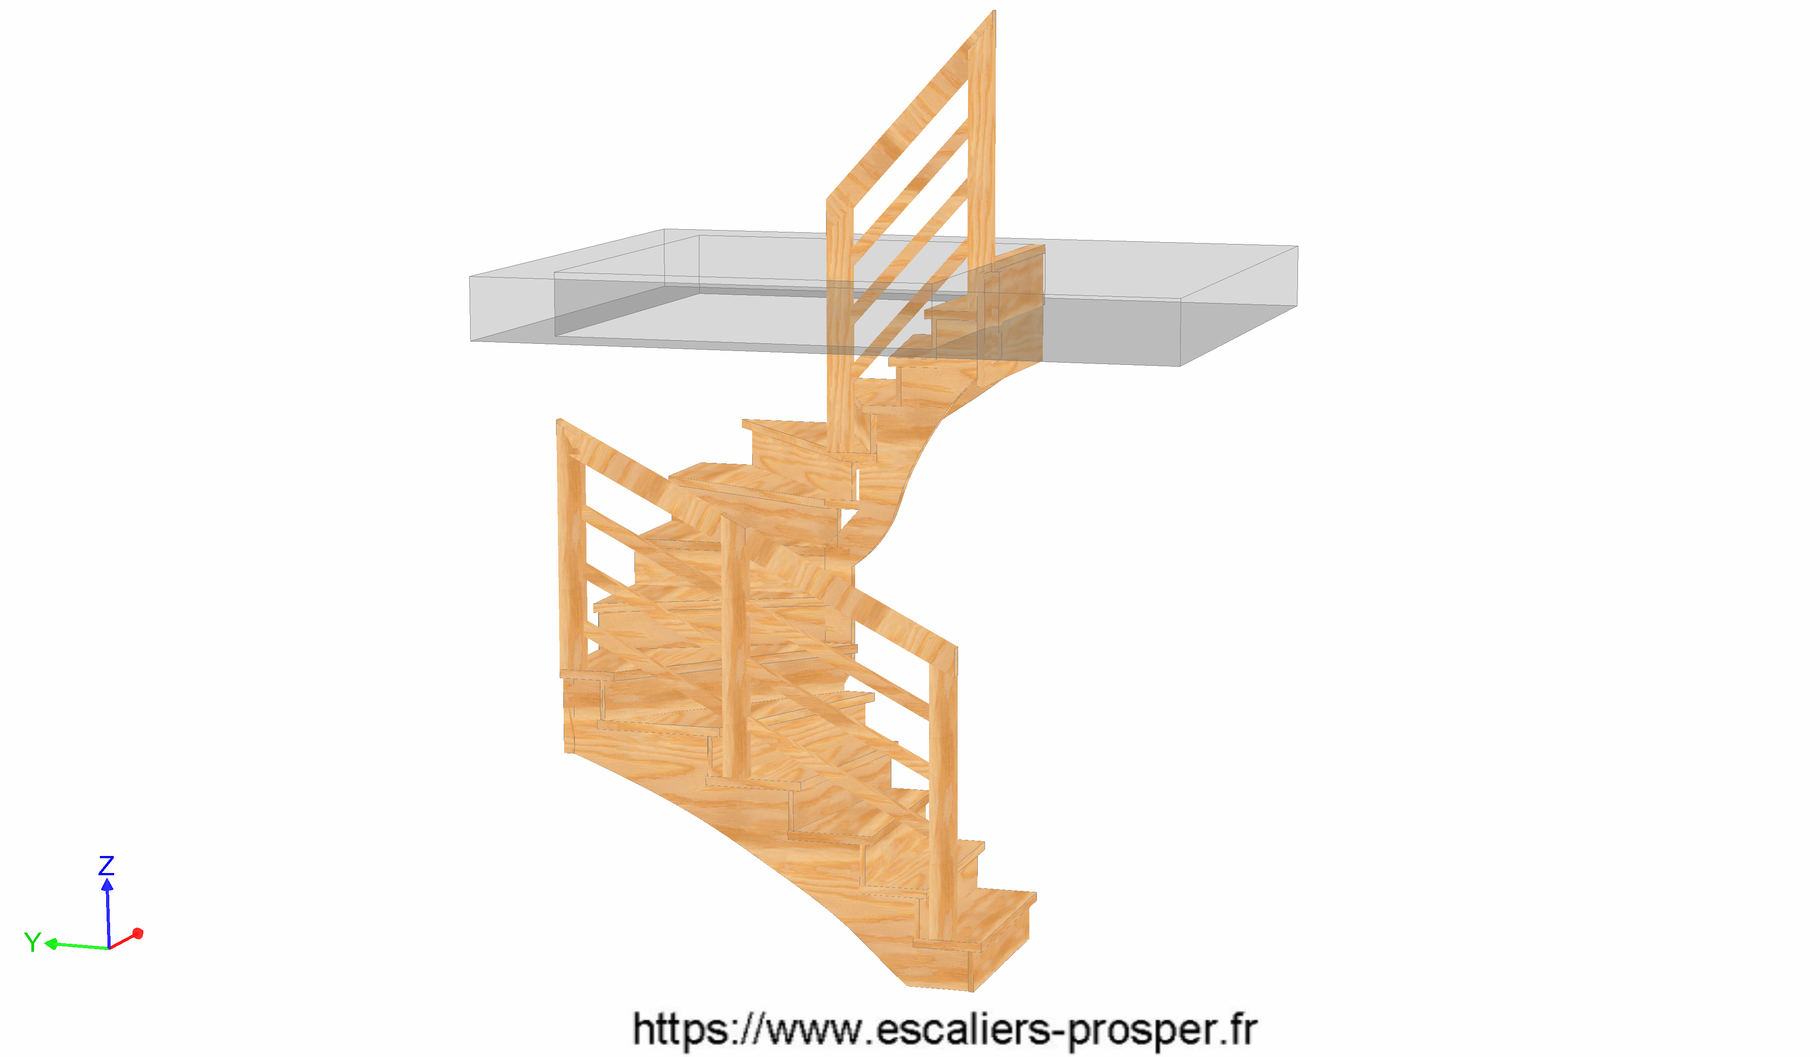 escalier en u l 39 anglaise e15 042 a rdc escaliers prosper sp cialiste de la conception. Black Bedroom Furniture Sets. Home Design Ideas